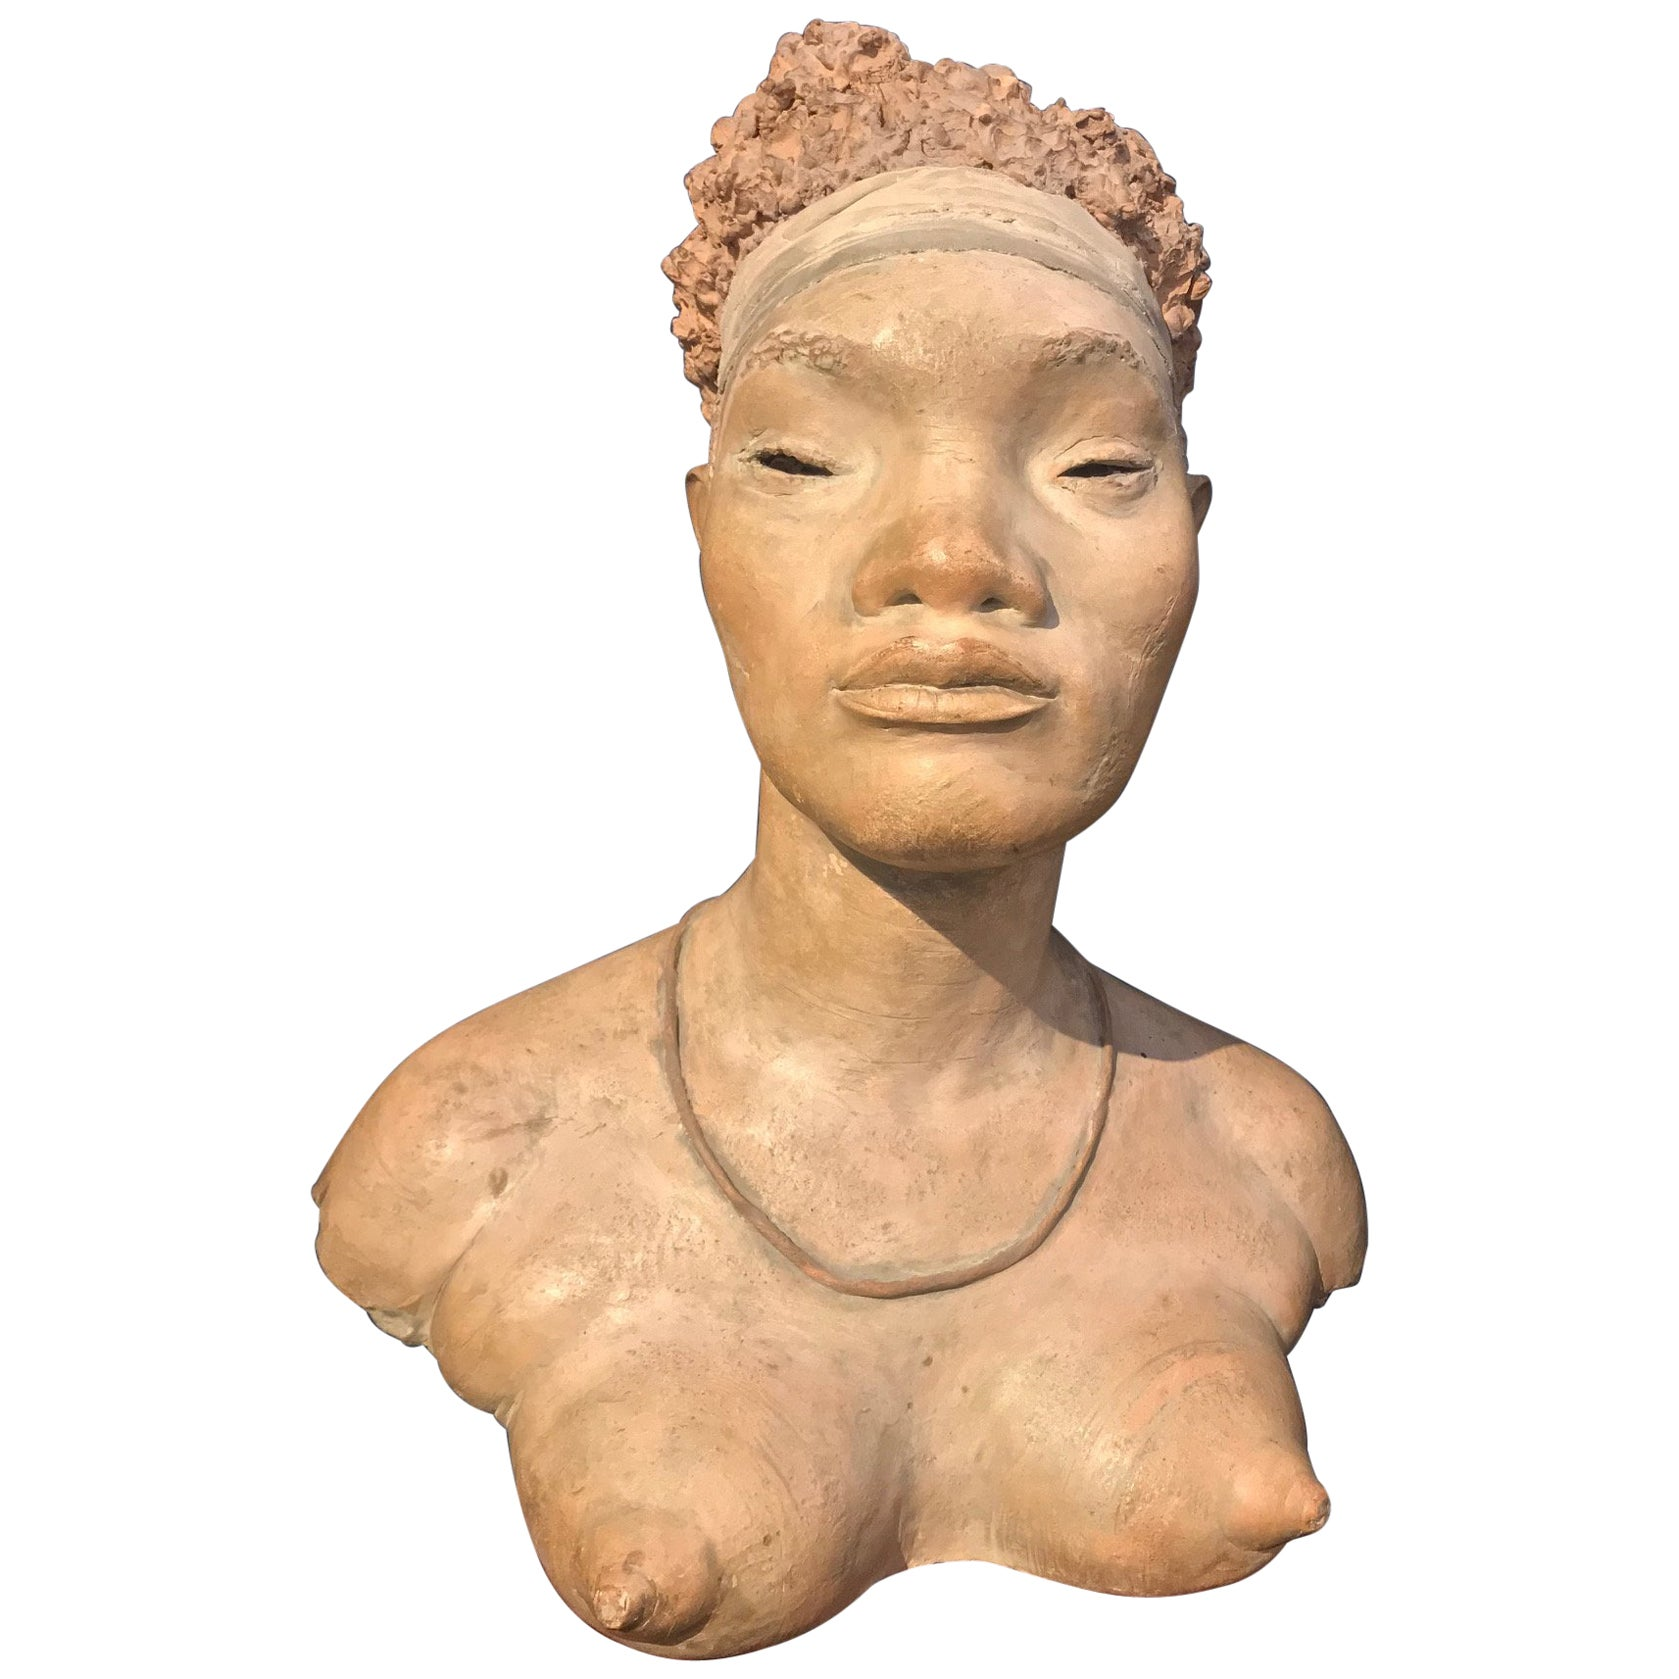 Terracotta Sculpture of an African Woman by Renzo Moscatelli